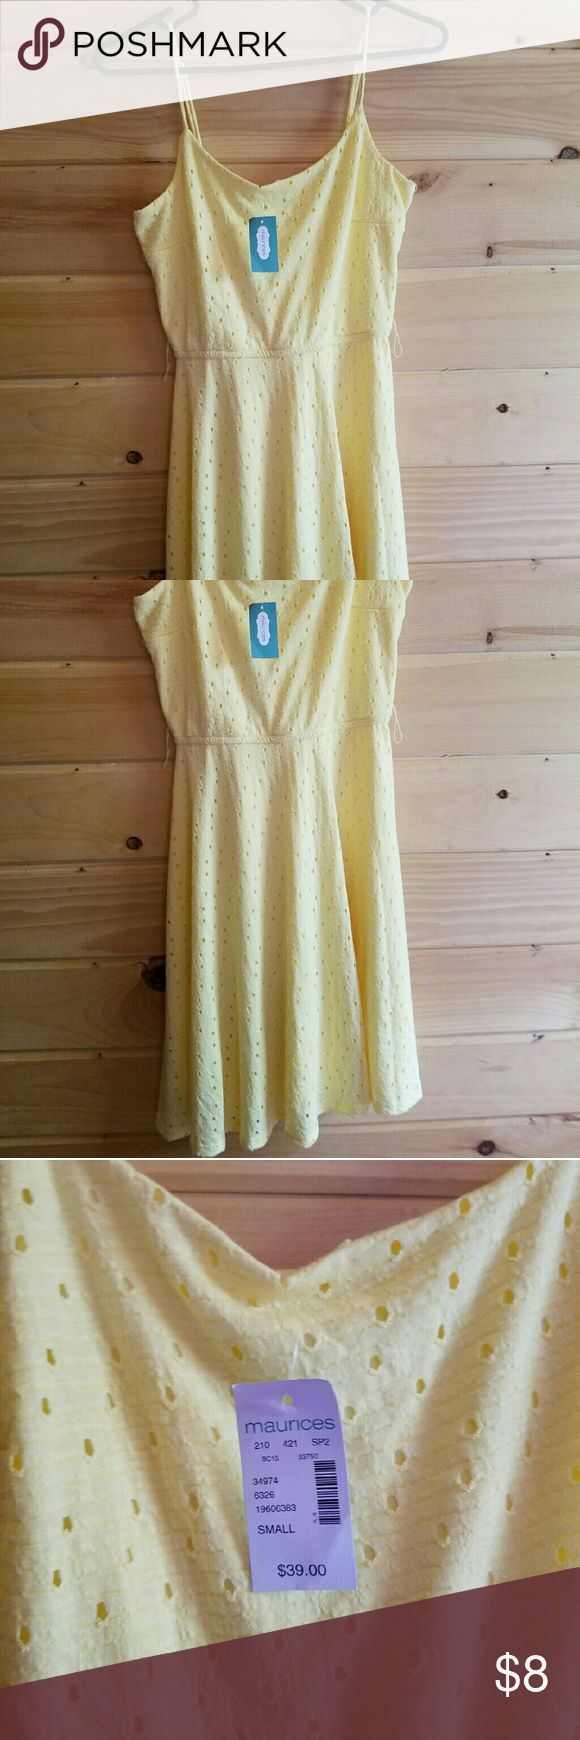 WEEKEND SALE Maurices yellow dress Summer dress size Small nwt Maurices Dresses